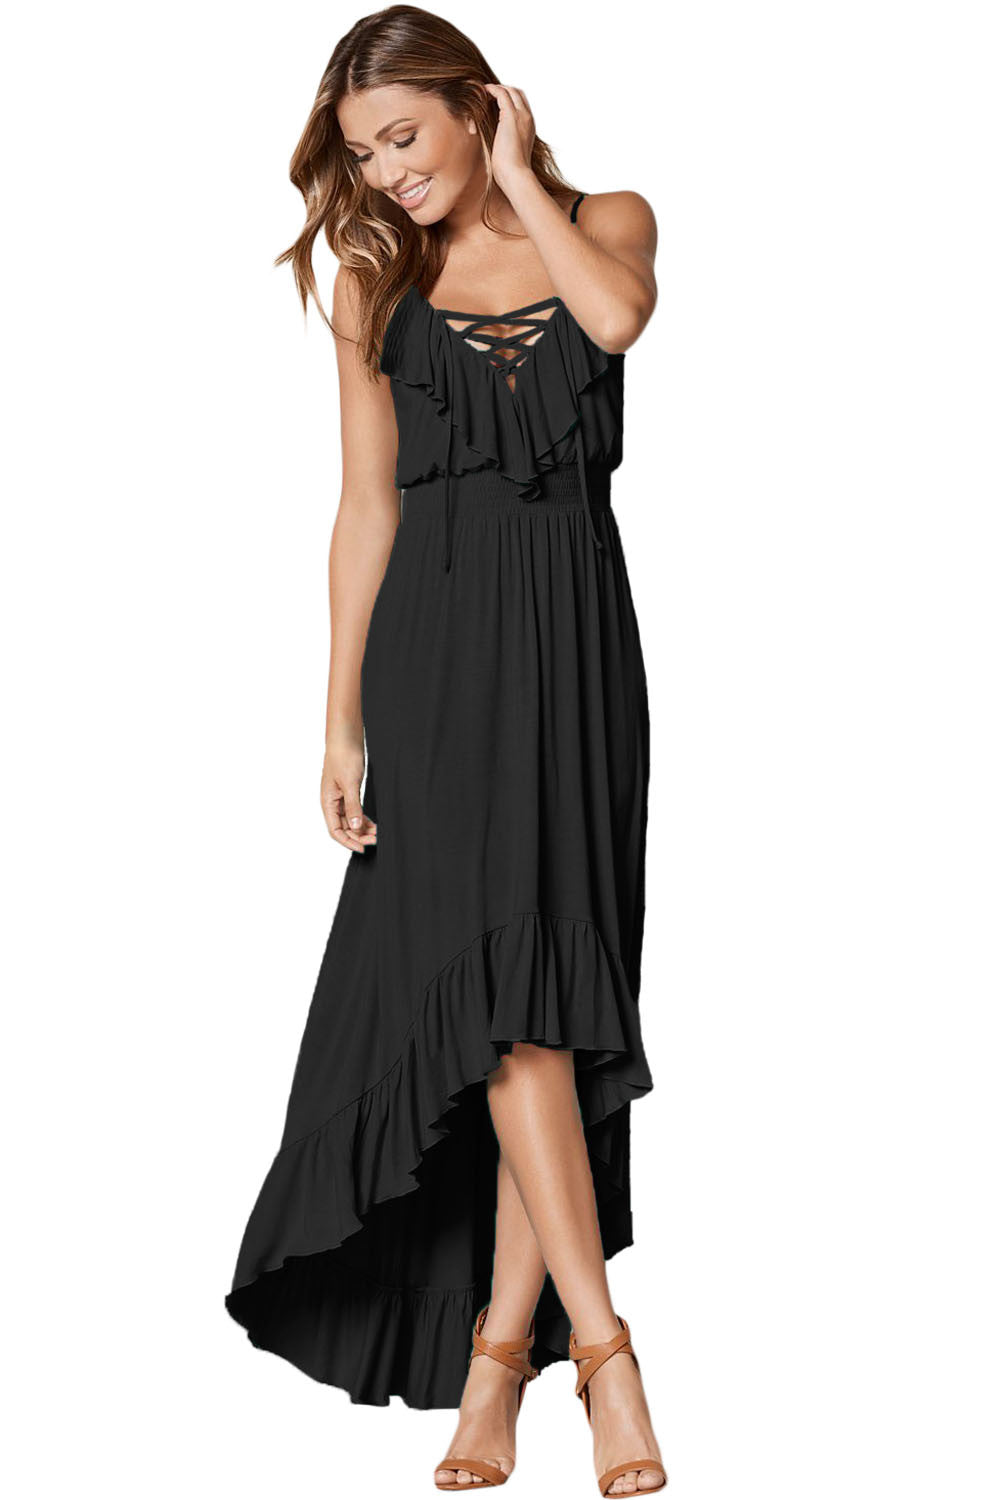 Her Fashion Black Lace Up V Neck Ruffle Trim Timeless Maxi Dress